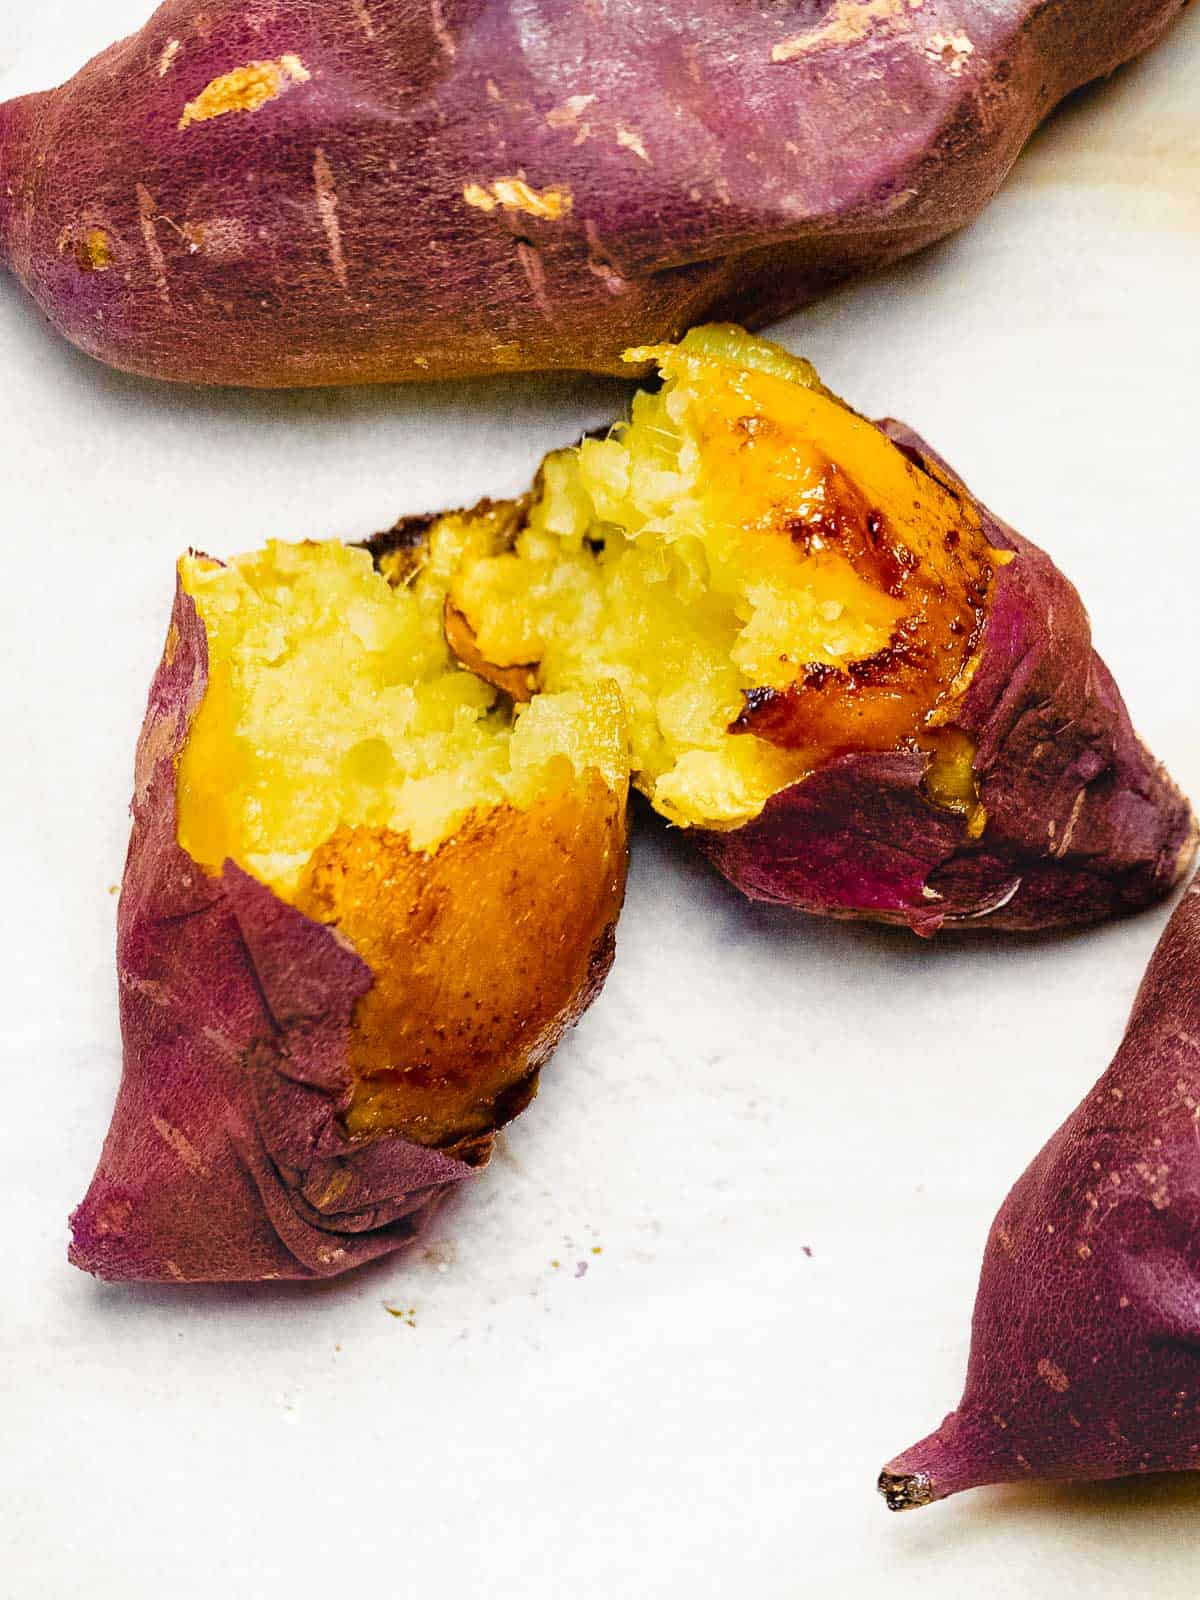 Korean sweet potato baked until golden brown and caramelized split in half to reveal golden yellow color inside.